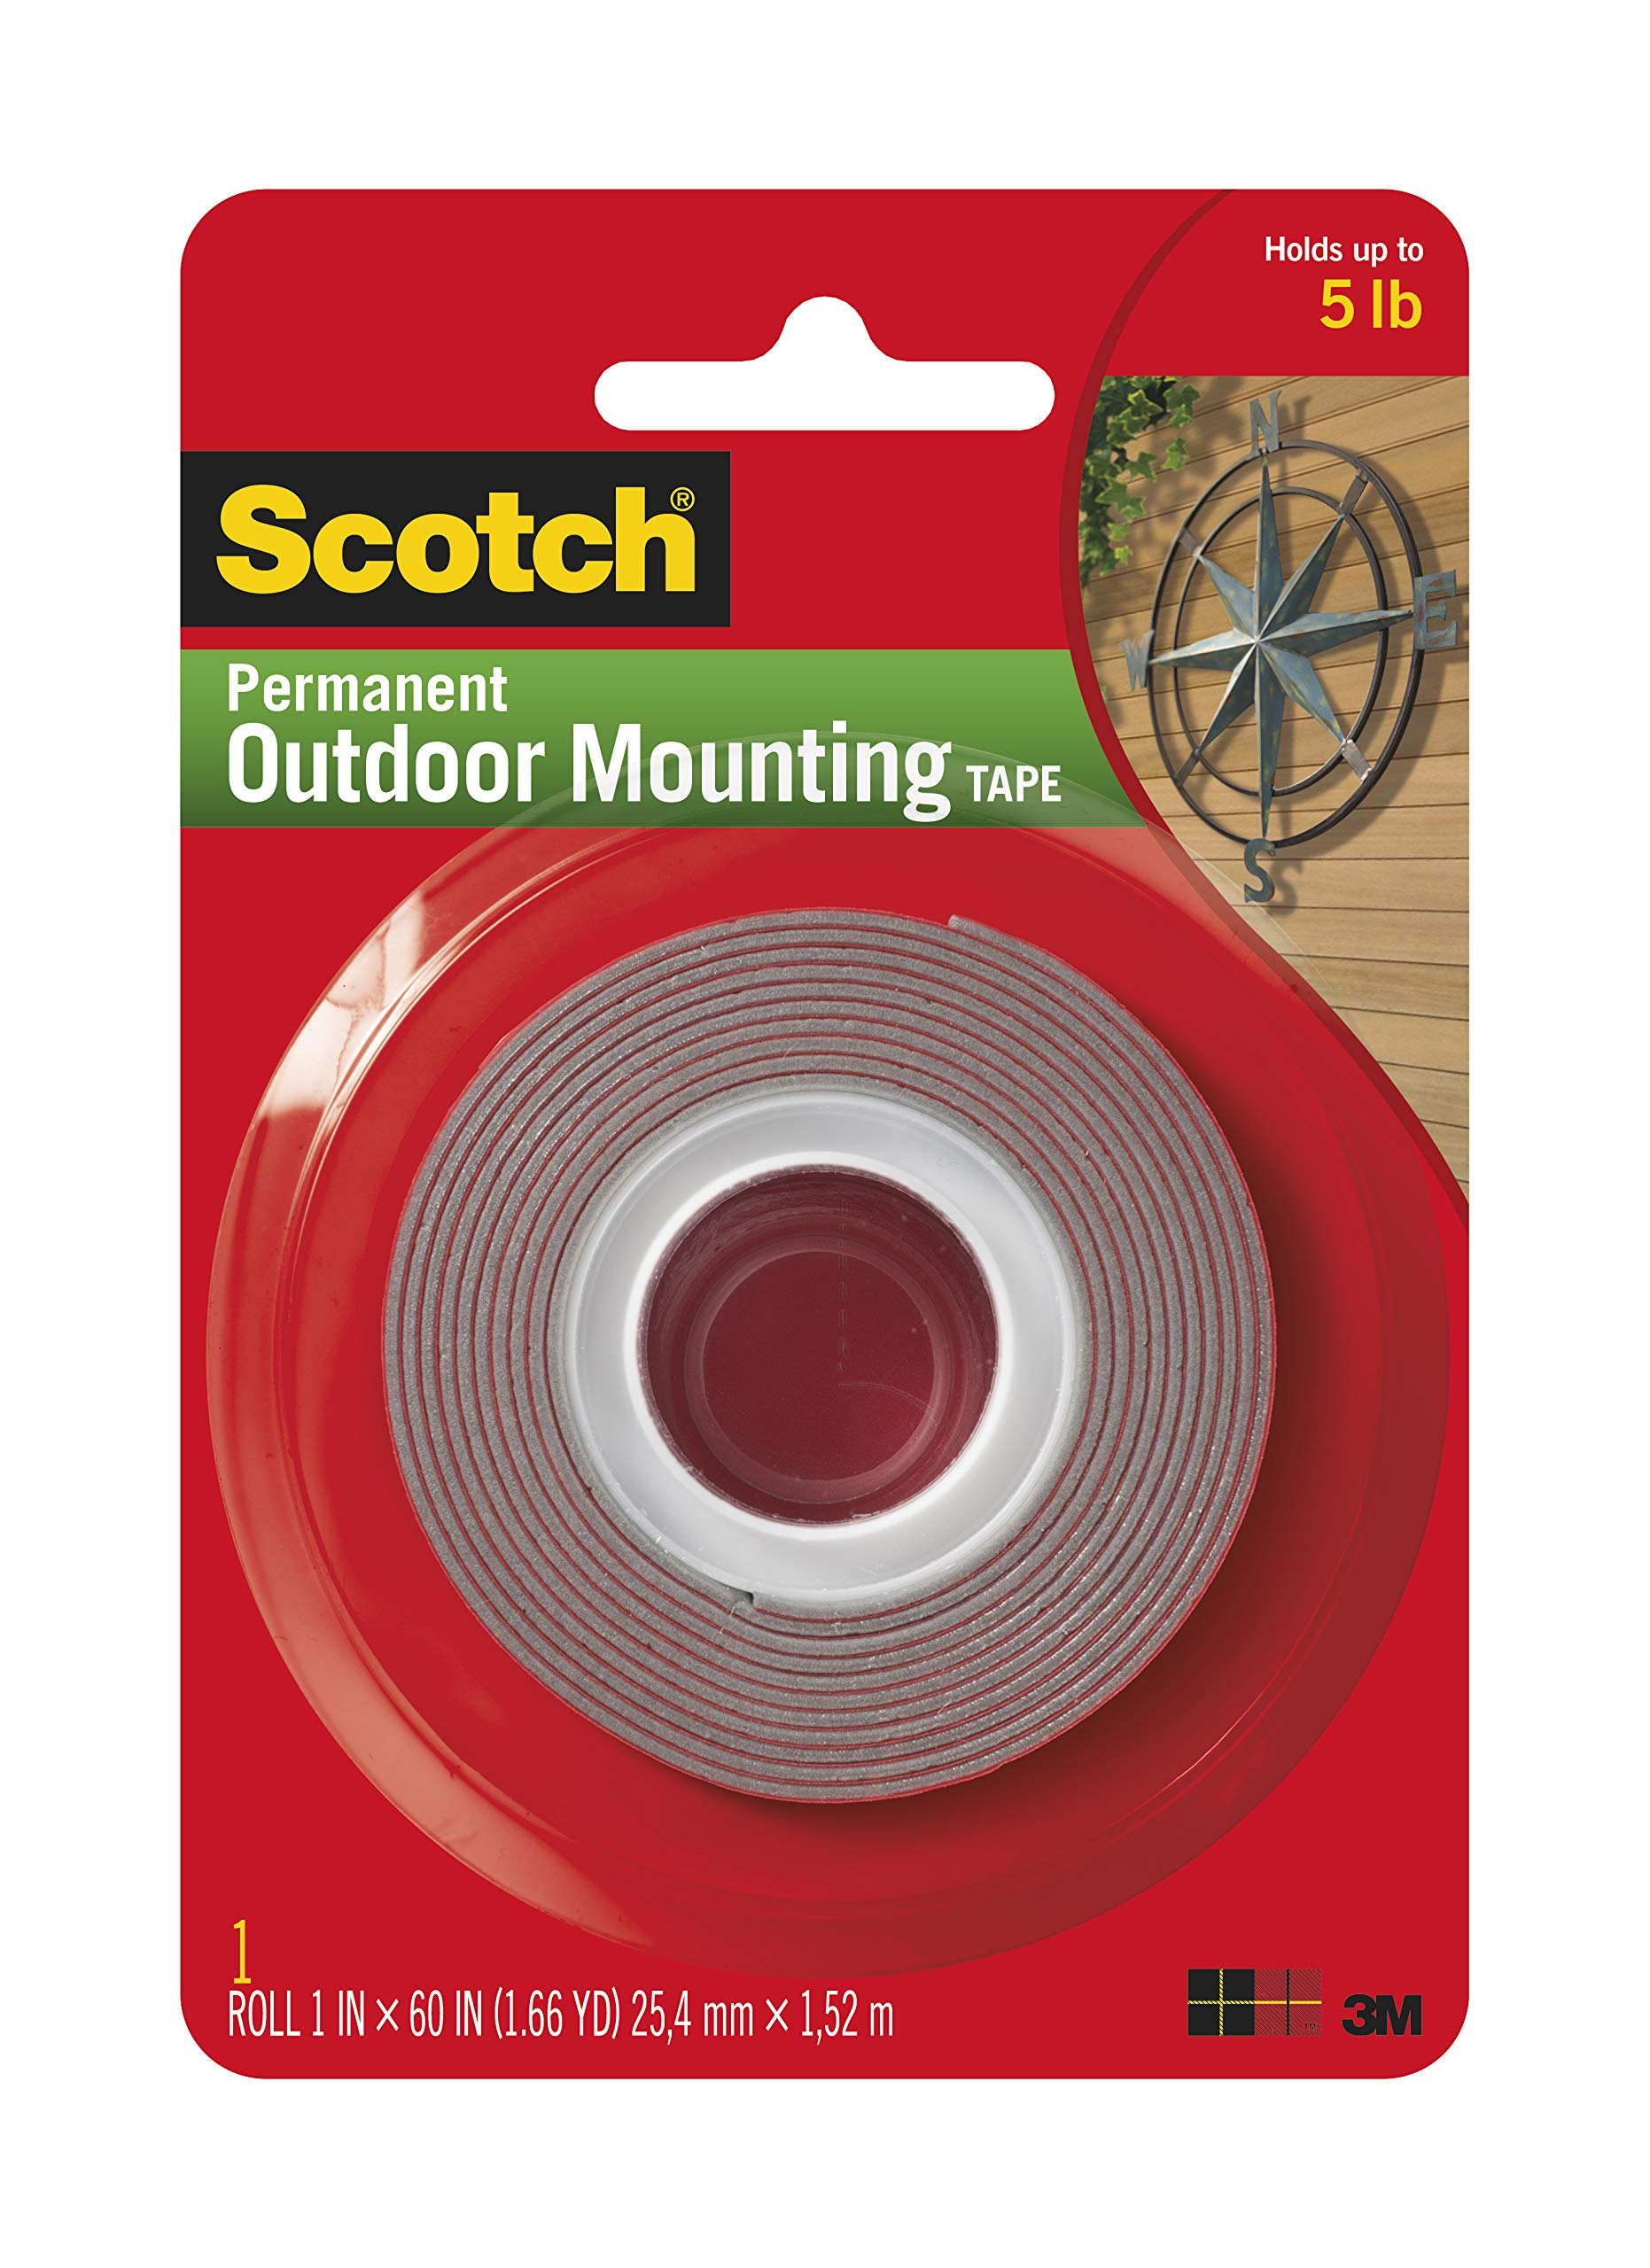 Scotch Outdoor Mounting Tape, 1 x 60'', Gray, 24 per Case by Scotch Brand